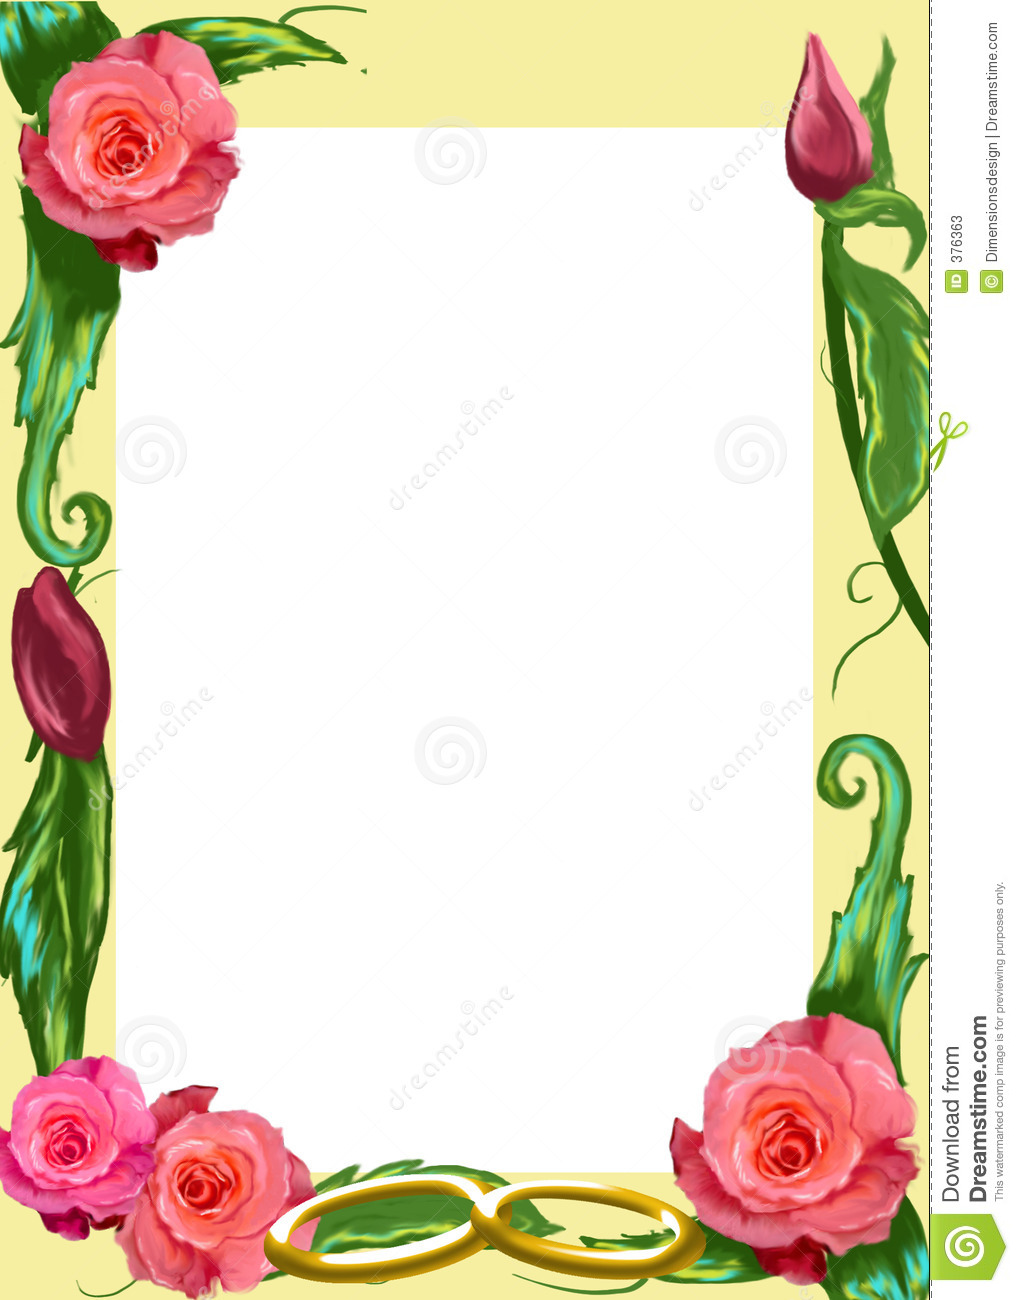 Book Cover Design With Flowers : Rose border stock photos image